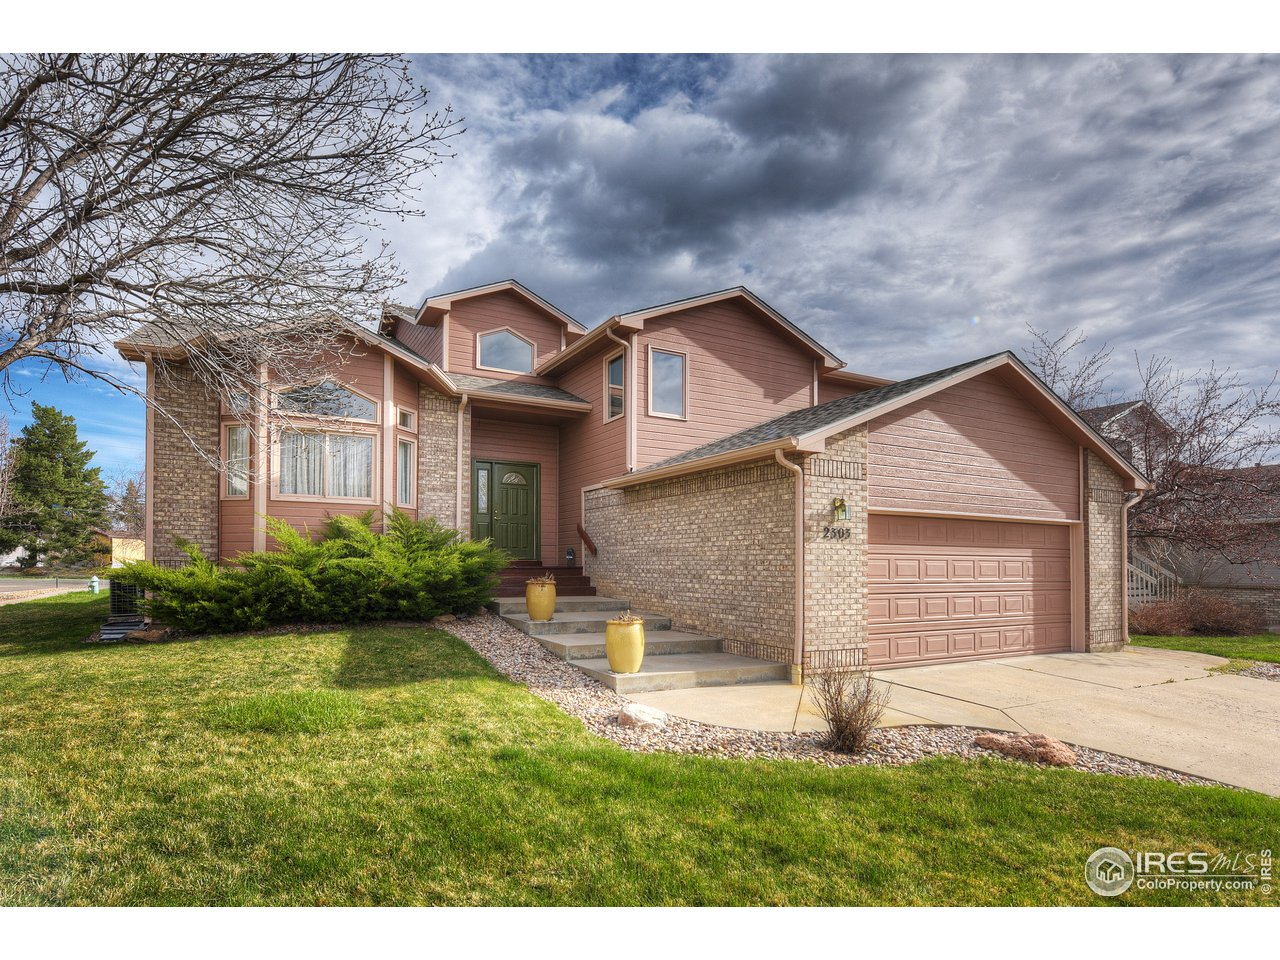 2303 Vineyard Pl, Boulder CO 80304